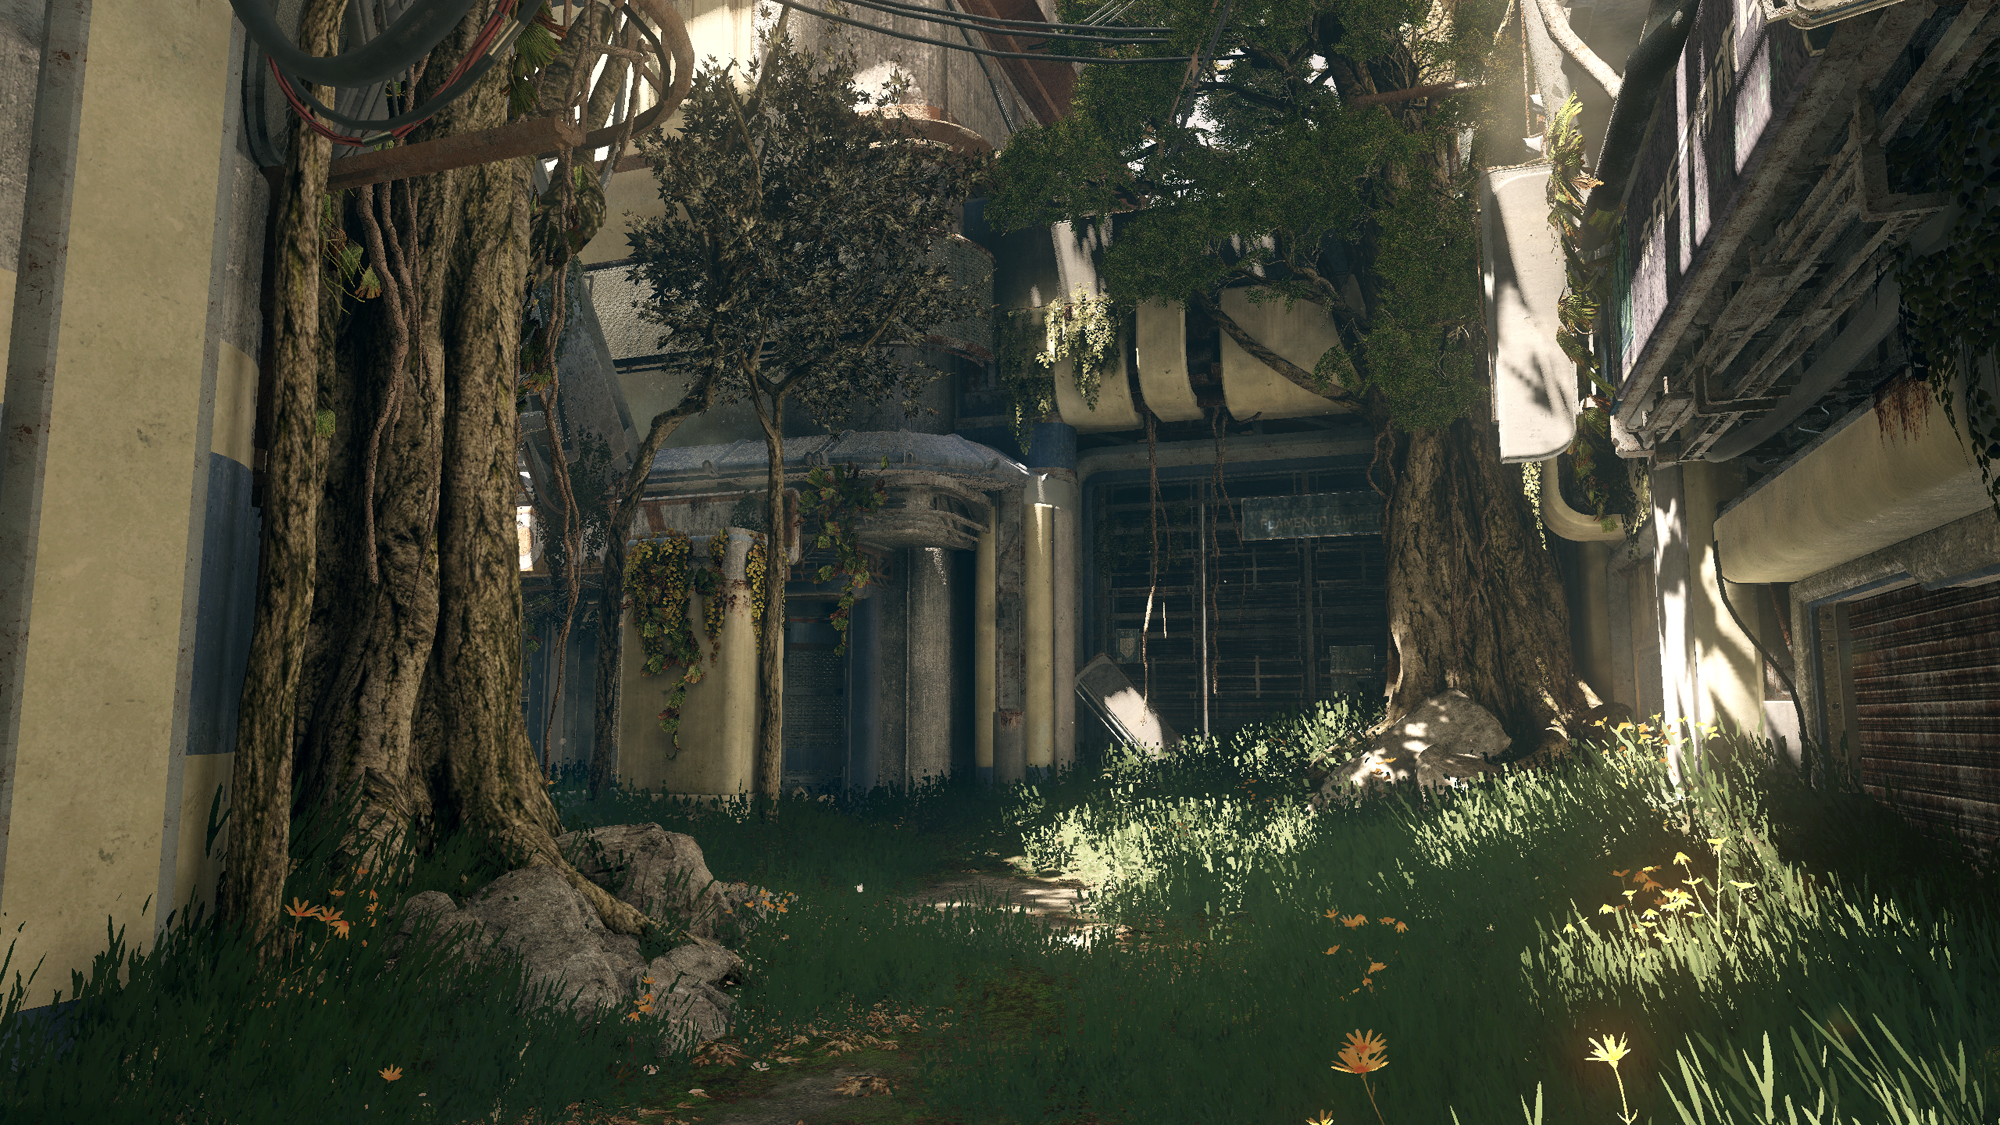 Overgrowth09